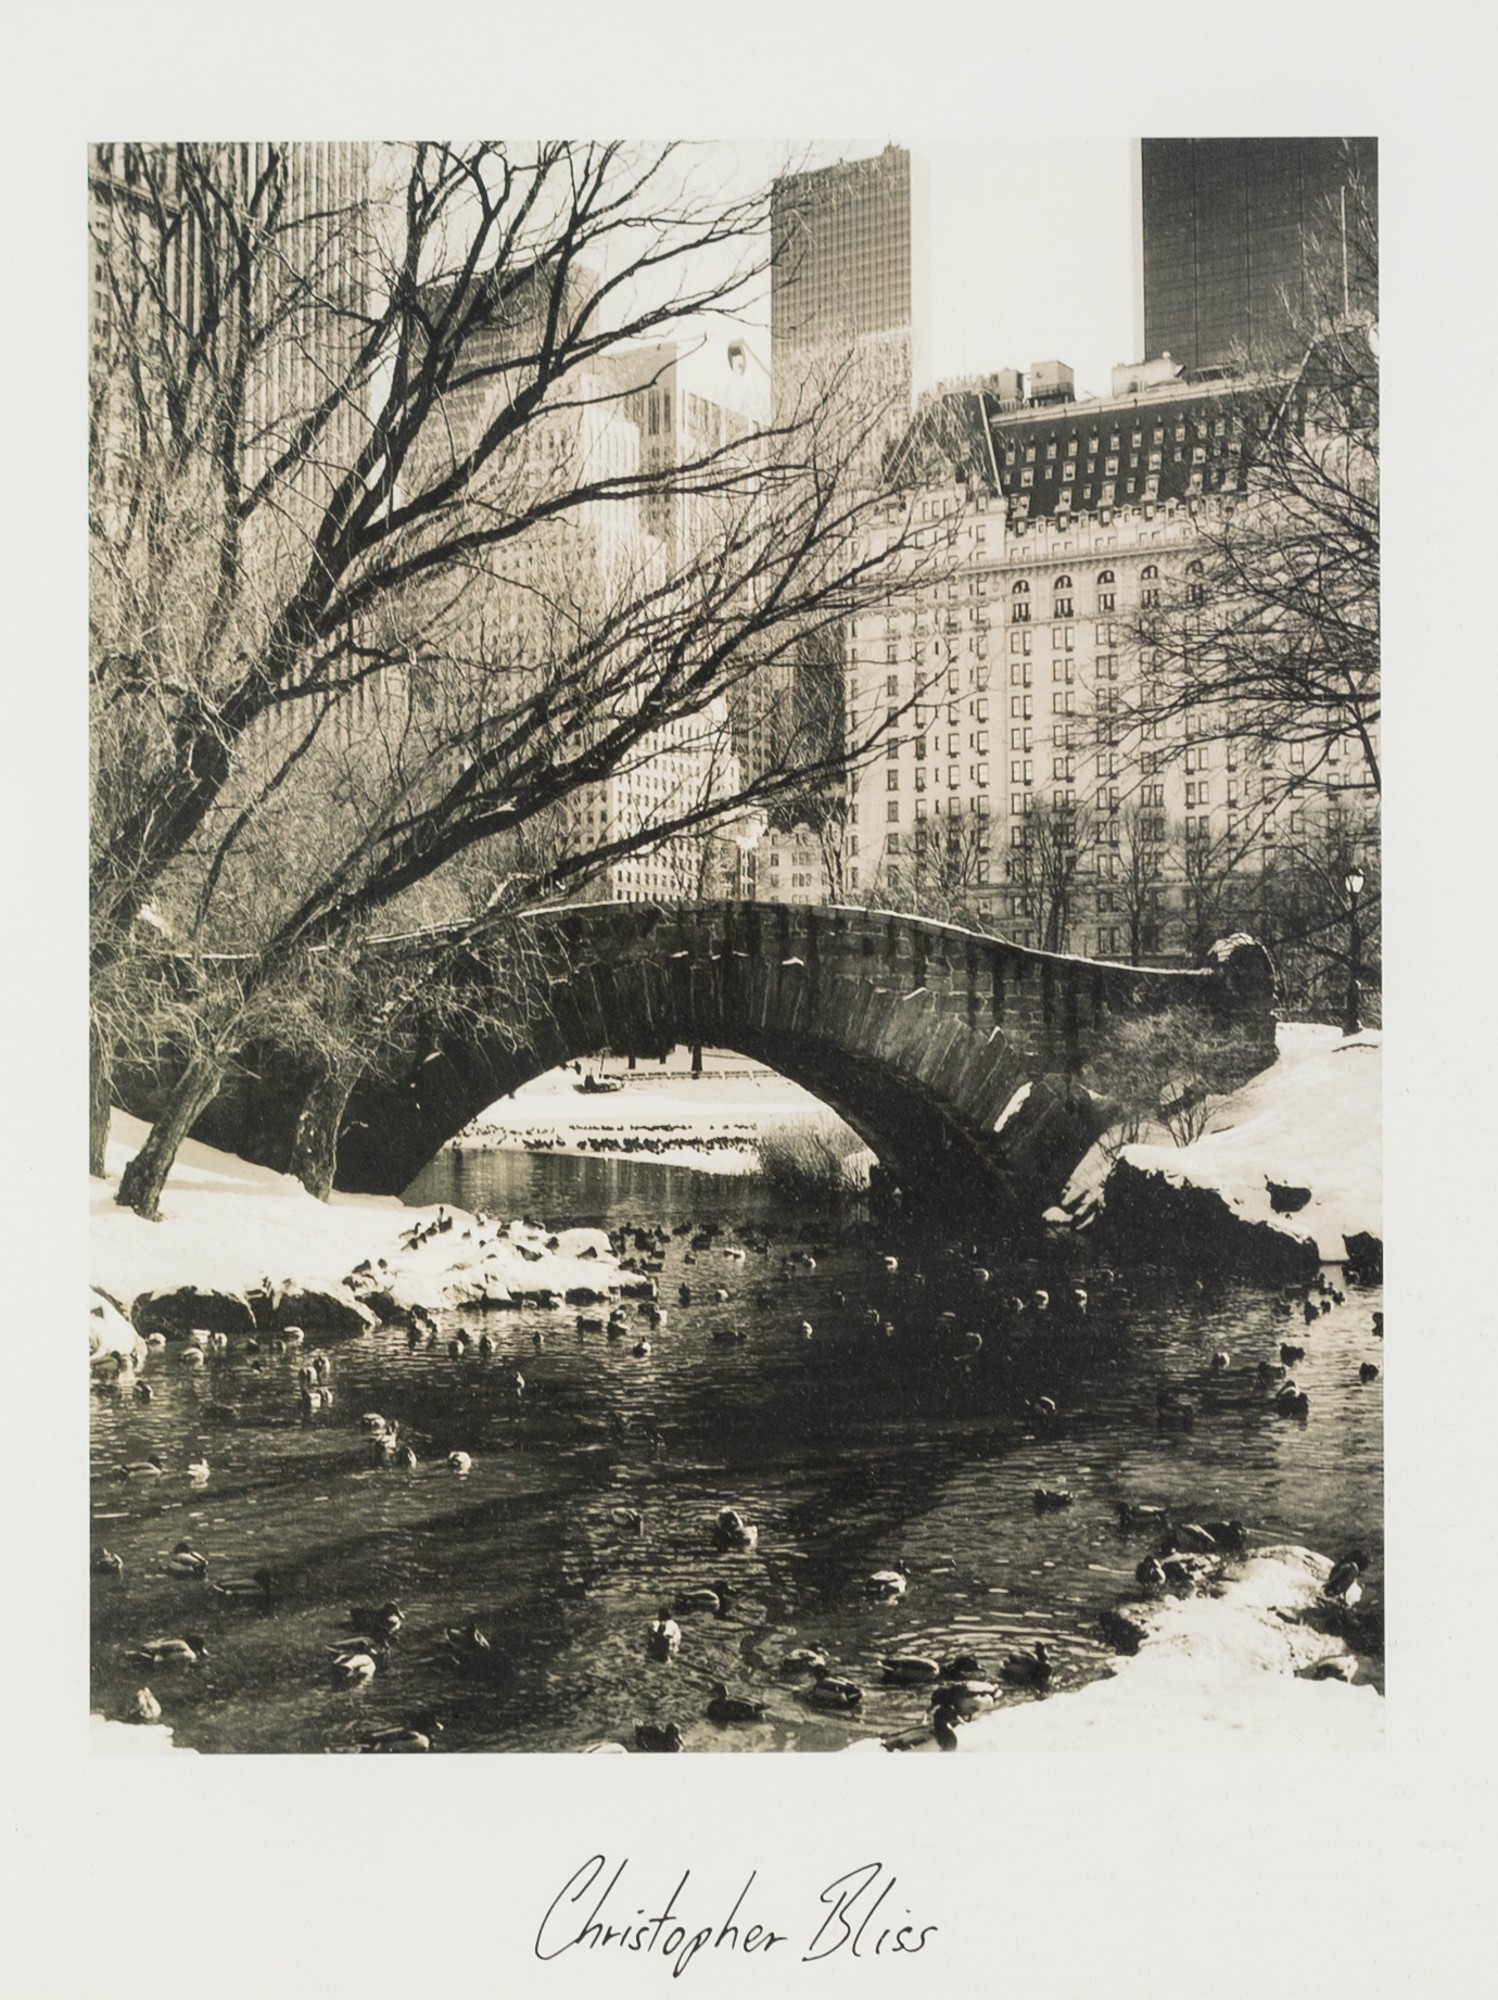 CHRISTOPHER BLISS (AMERICAN) TWO BLACK AND WHITE PHOTOGRAPHIC PRINTS New York Cityscapes each with - Image 3 of 4